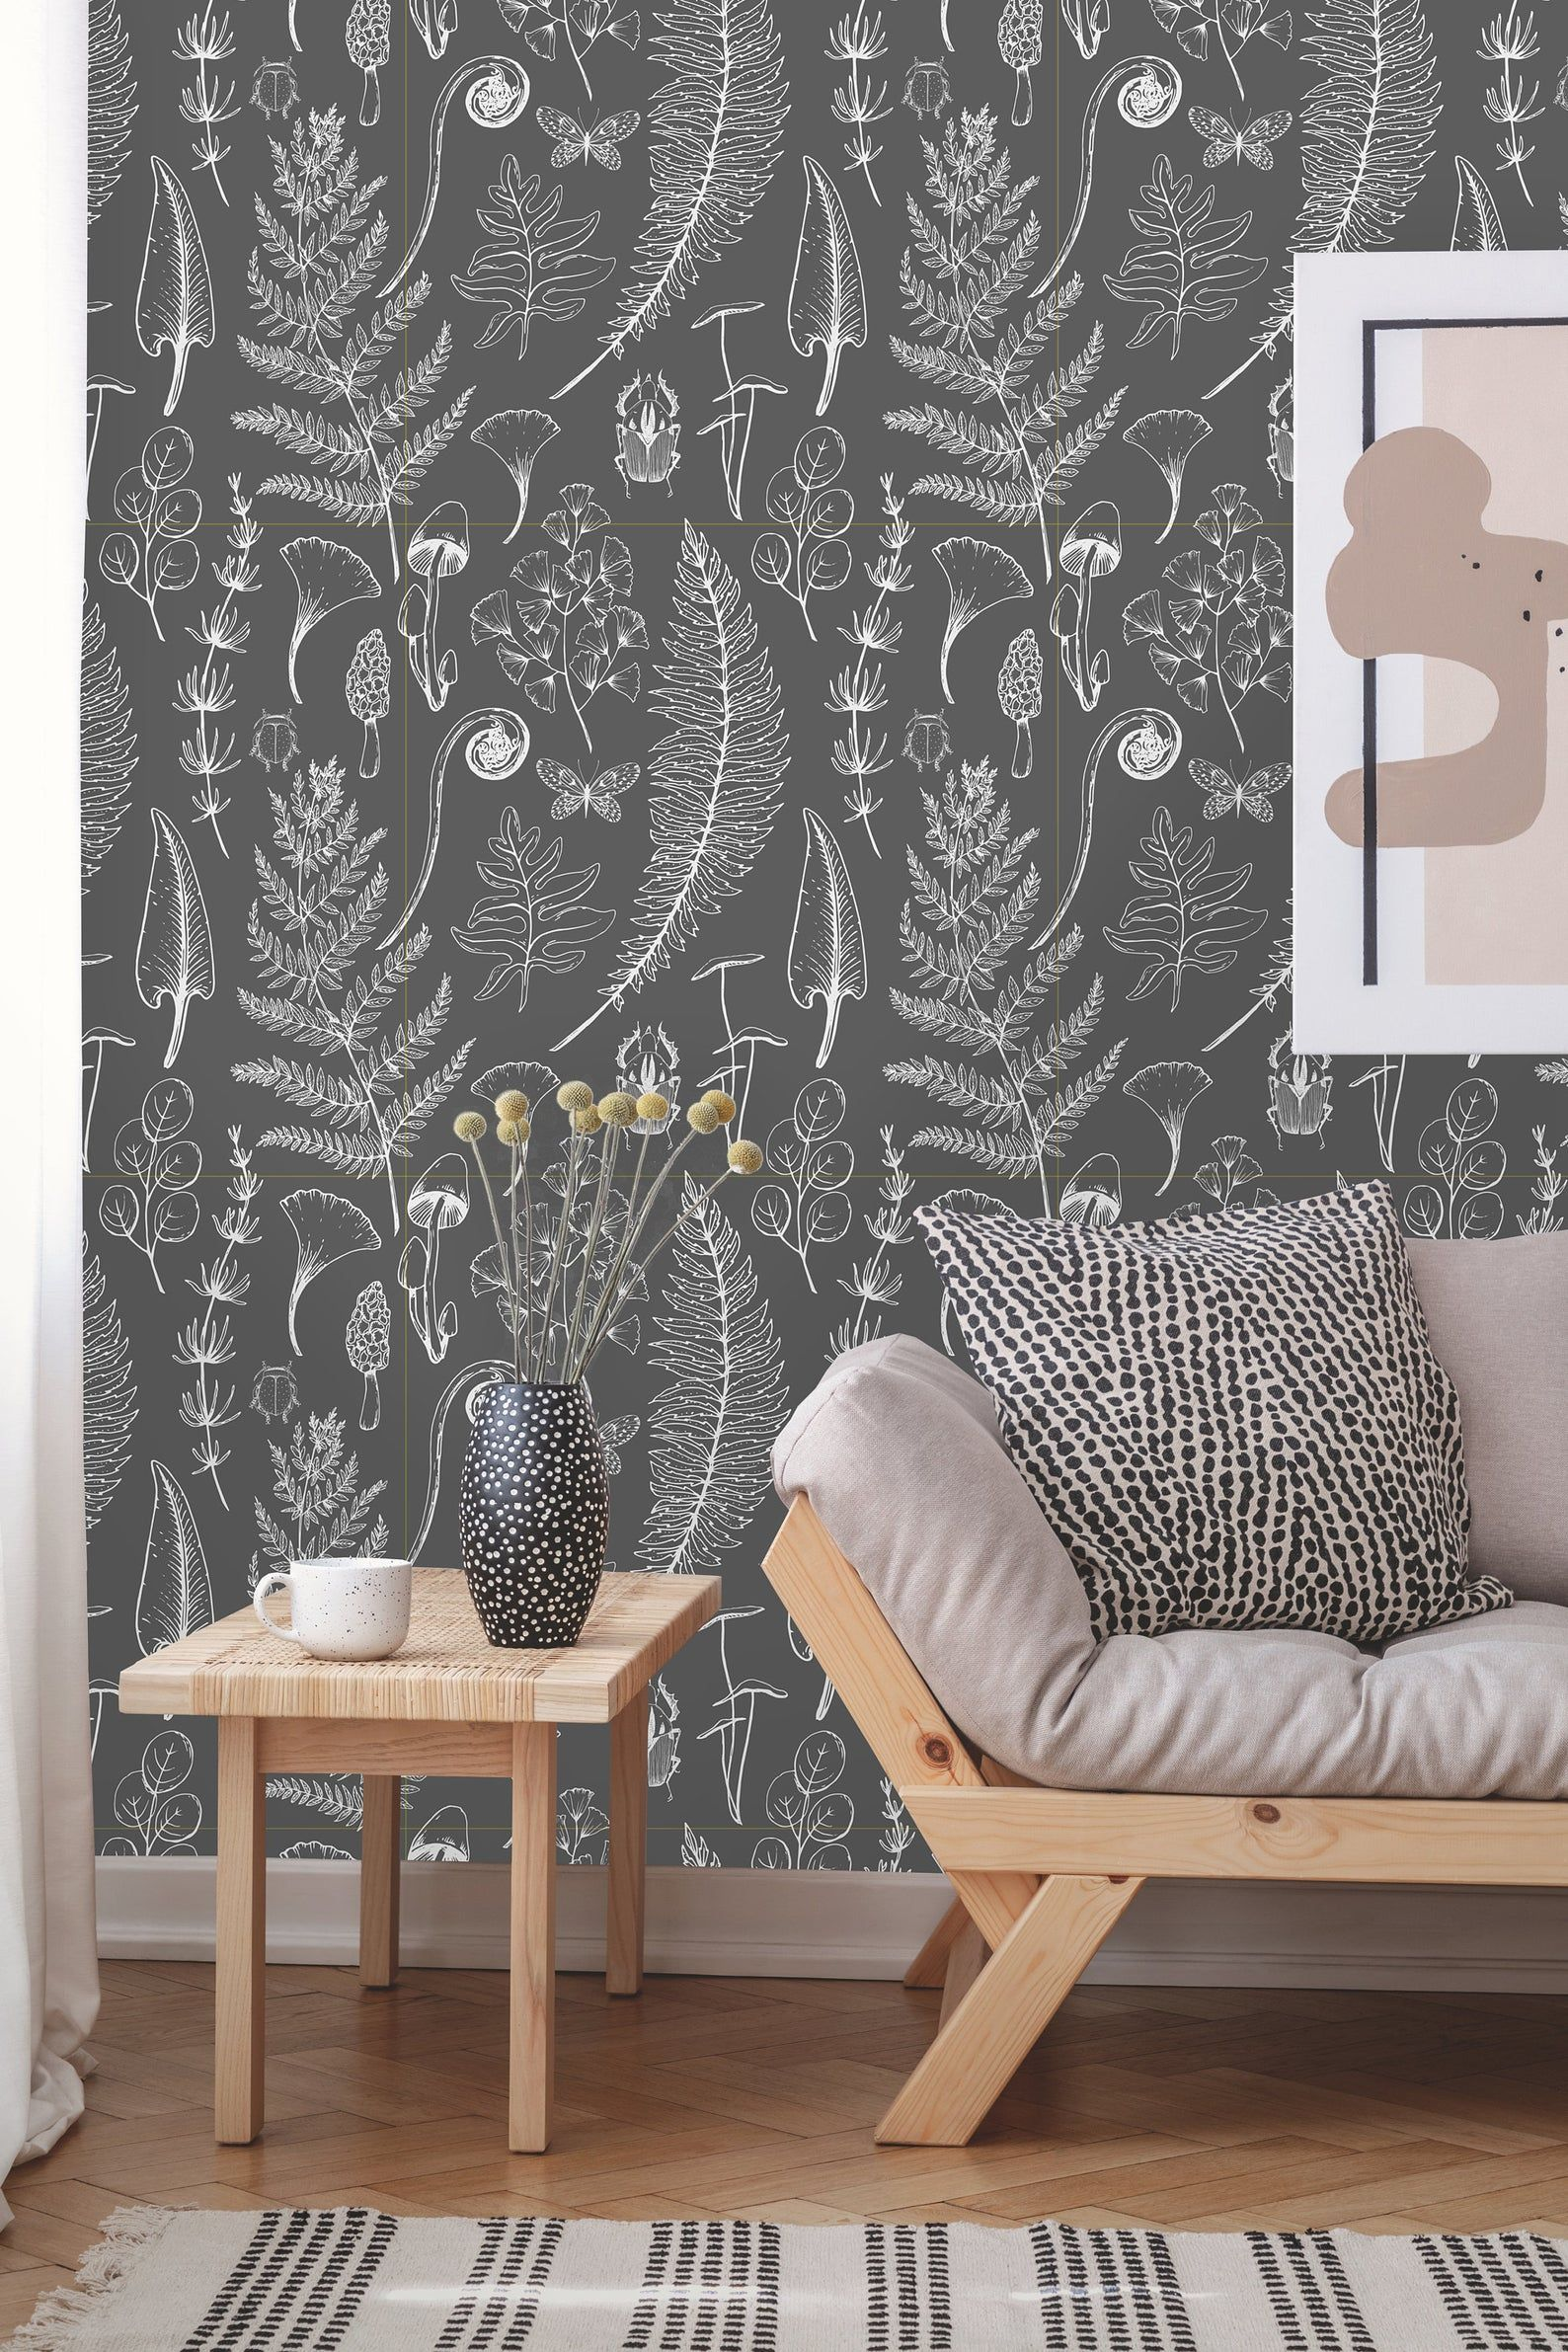 Removable Wallpaper Peel And Stick Floral Wallpaper Etsy In 2020 Removable Wallpaper Floral Wallpaper Pattern Wallpaper